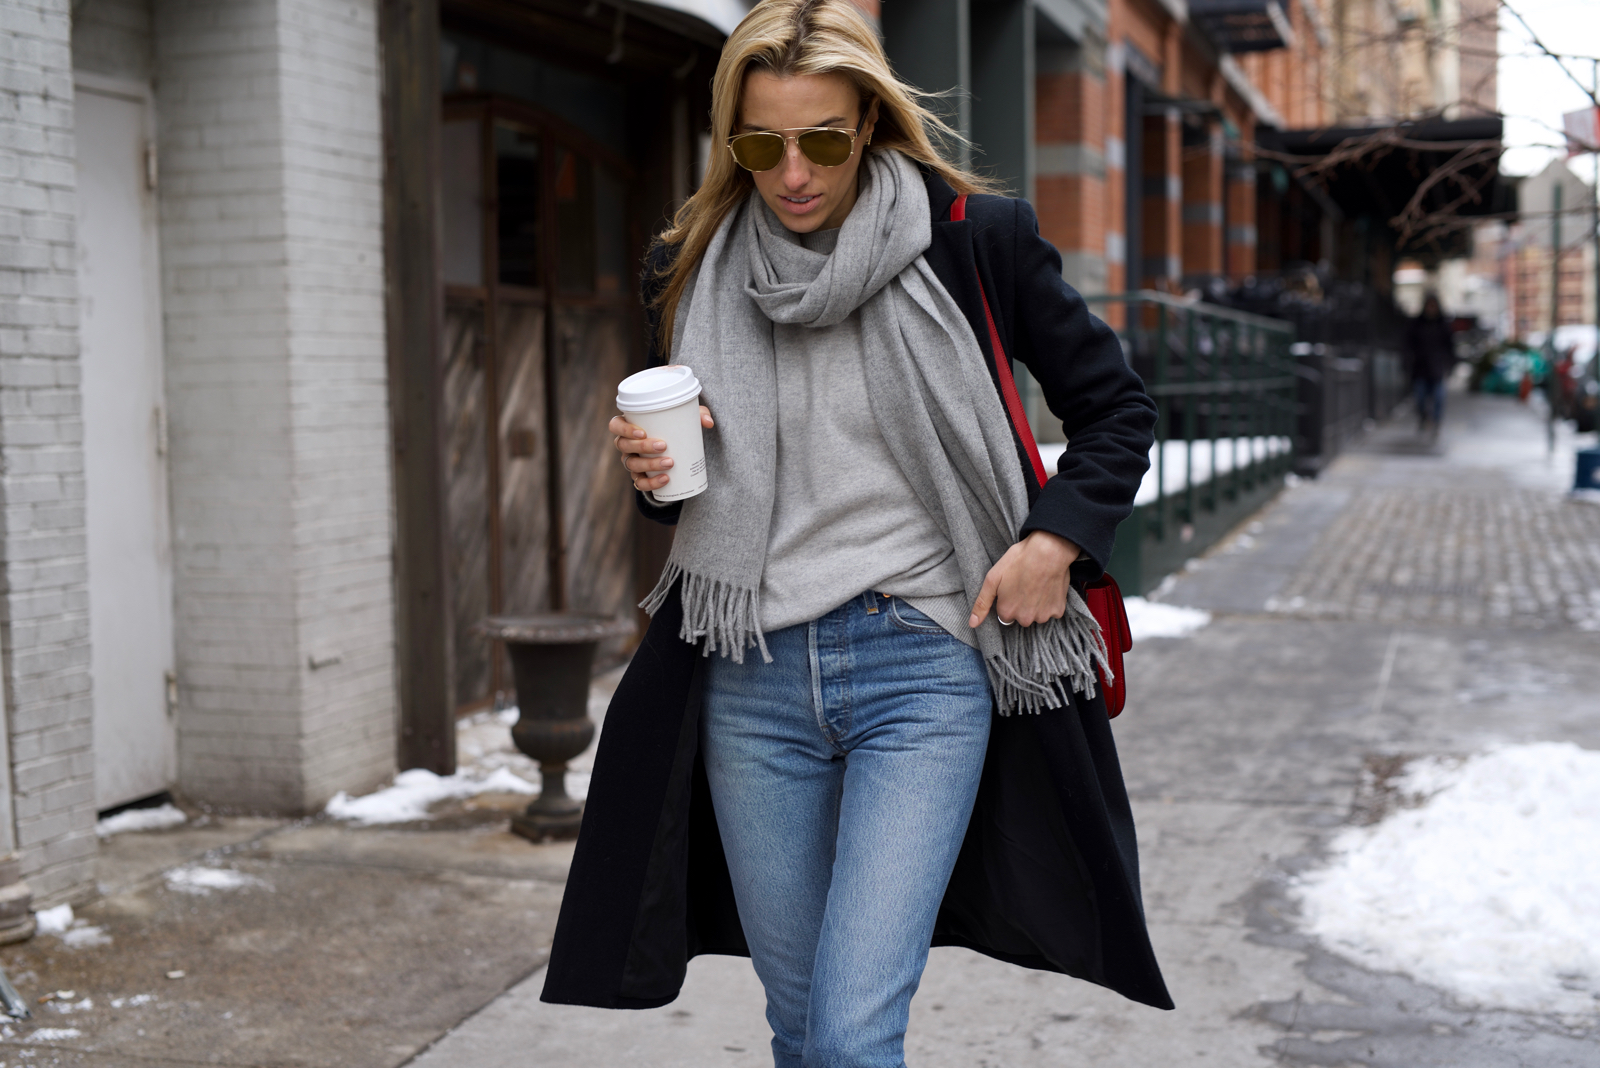 Acne Studios grey Scarf, Coffeenclothes, RE/Done Jeans, Celine bag, Dior Sunglasses, Isabel Marant boots